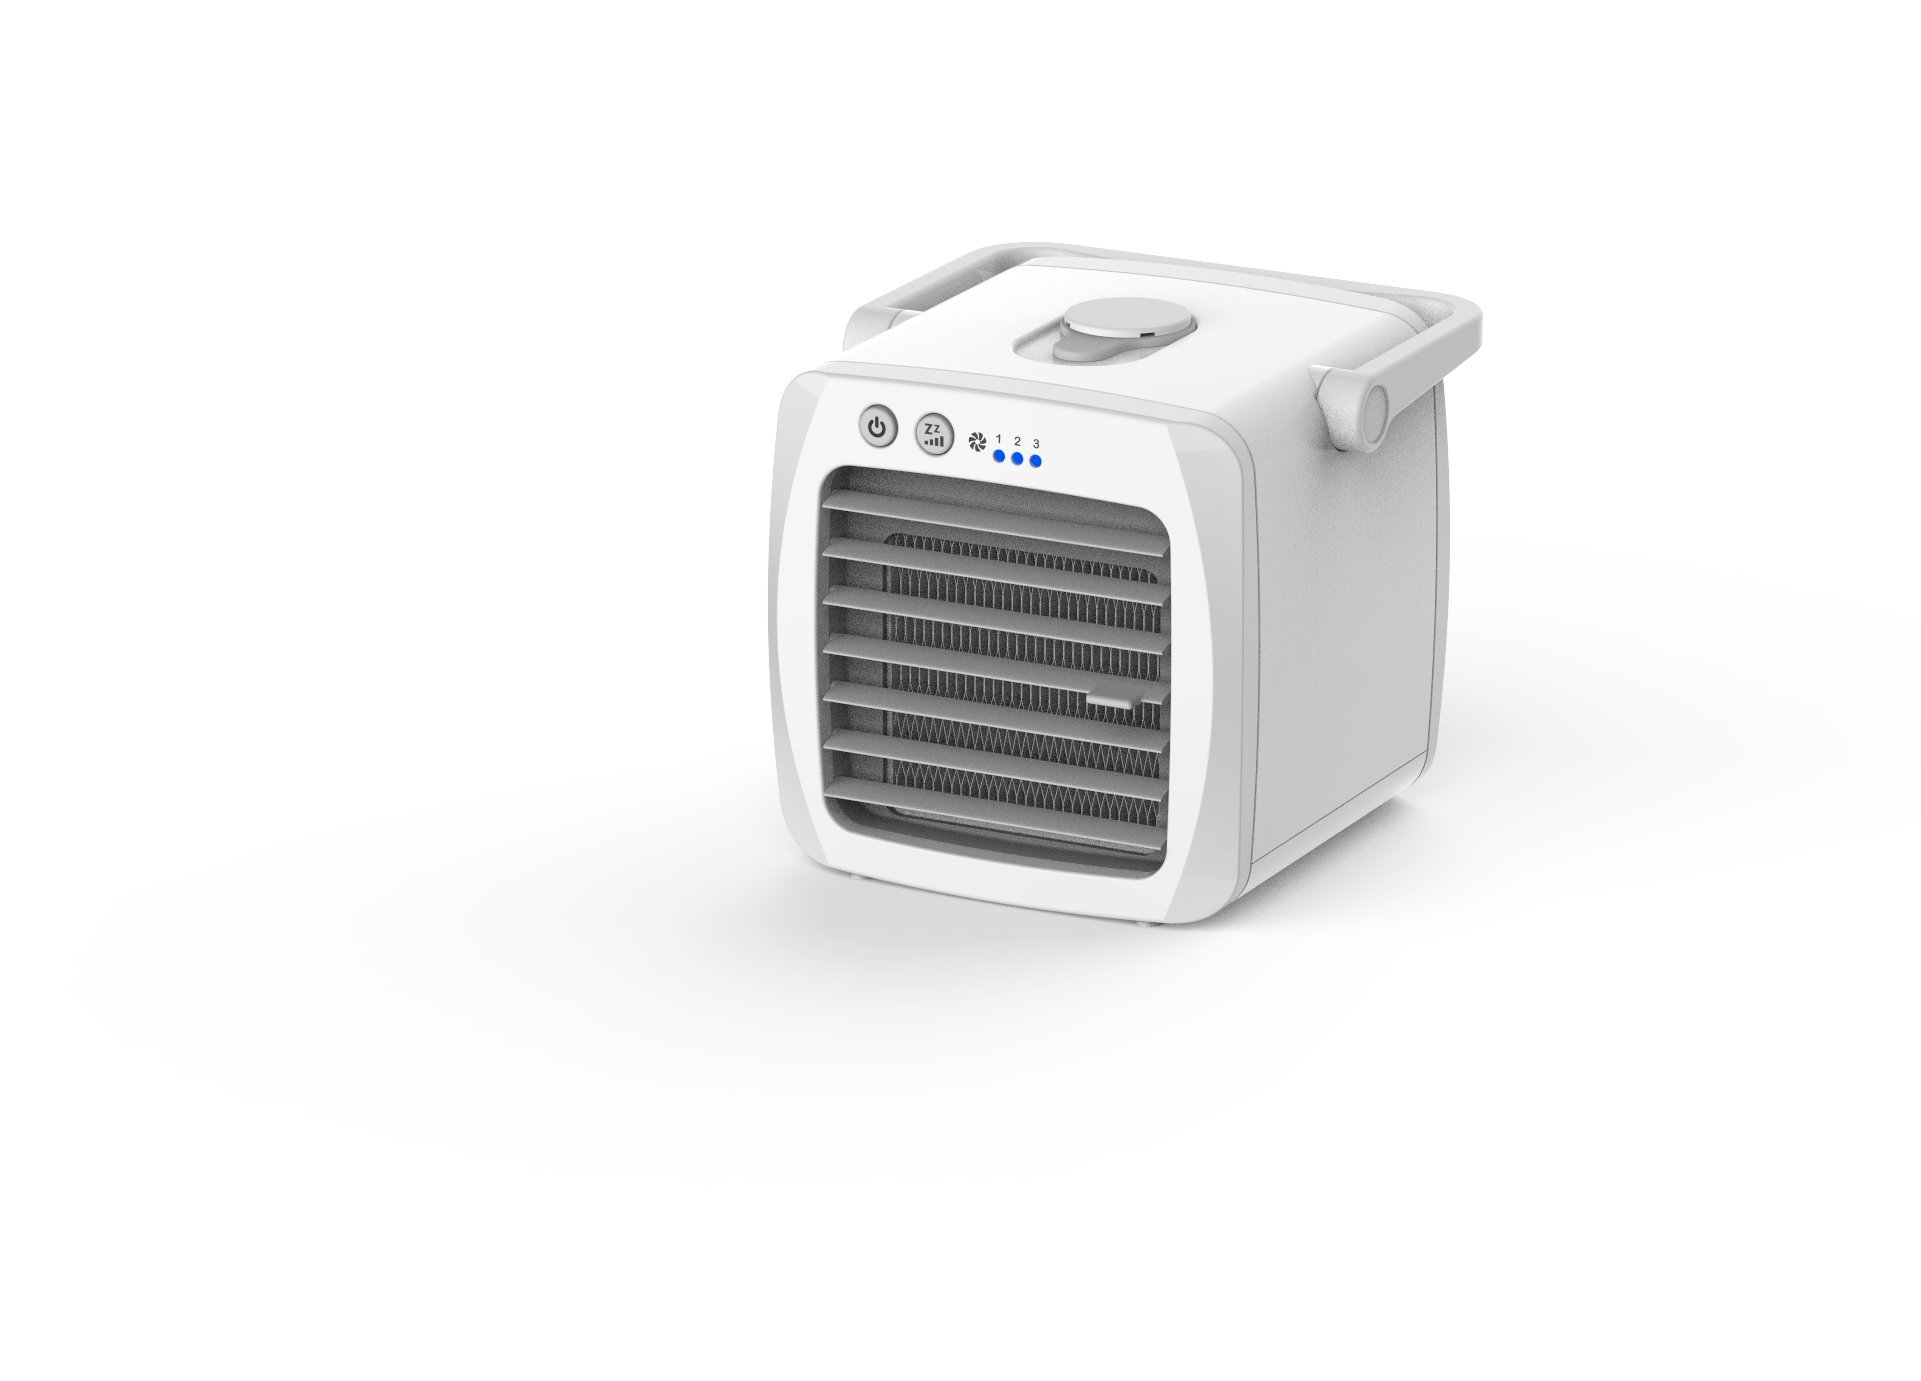 G2T-ICE Personal Mini Air Cooler, Humidifiers Portable Desktop Air Purifier Evaporative Cooling Fan For Yoga Picnic Sports Outdoors, No-leaking Design, White